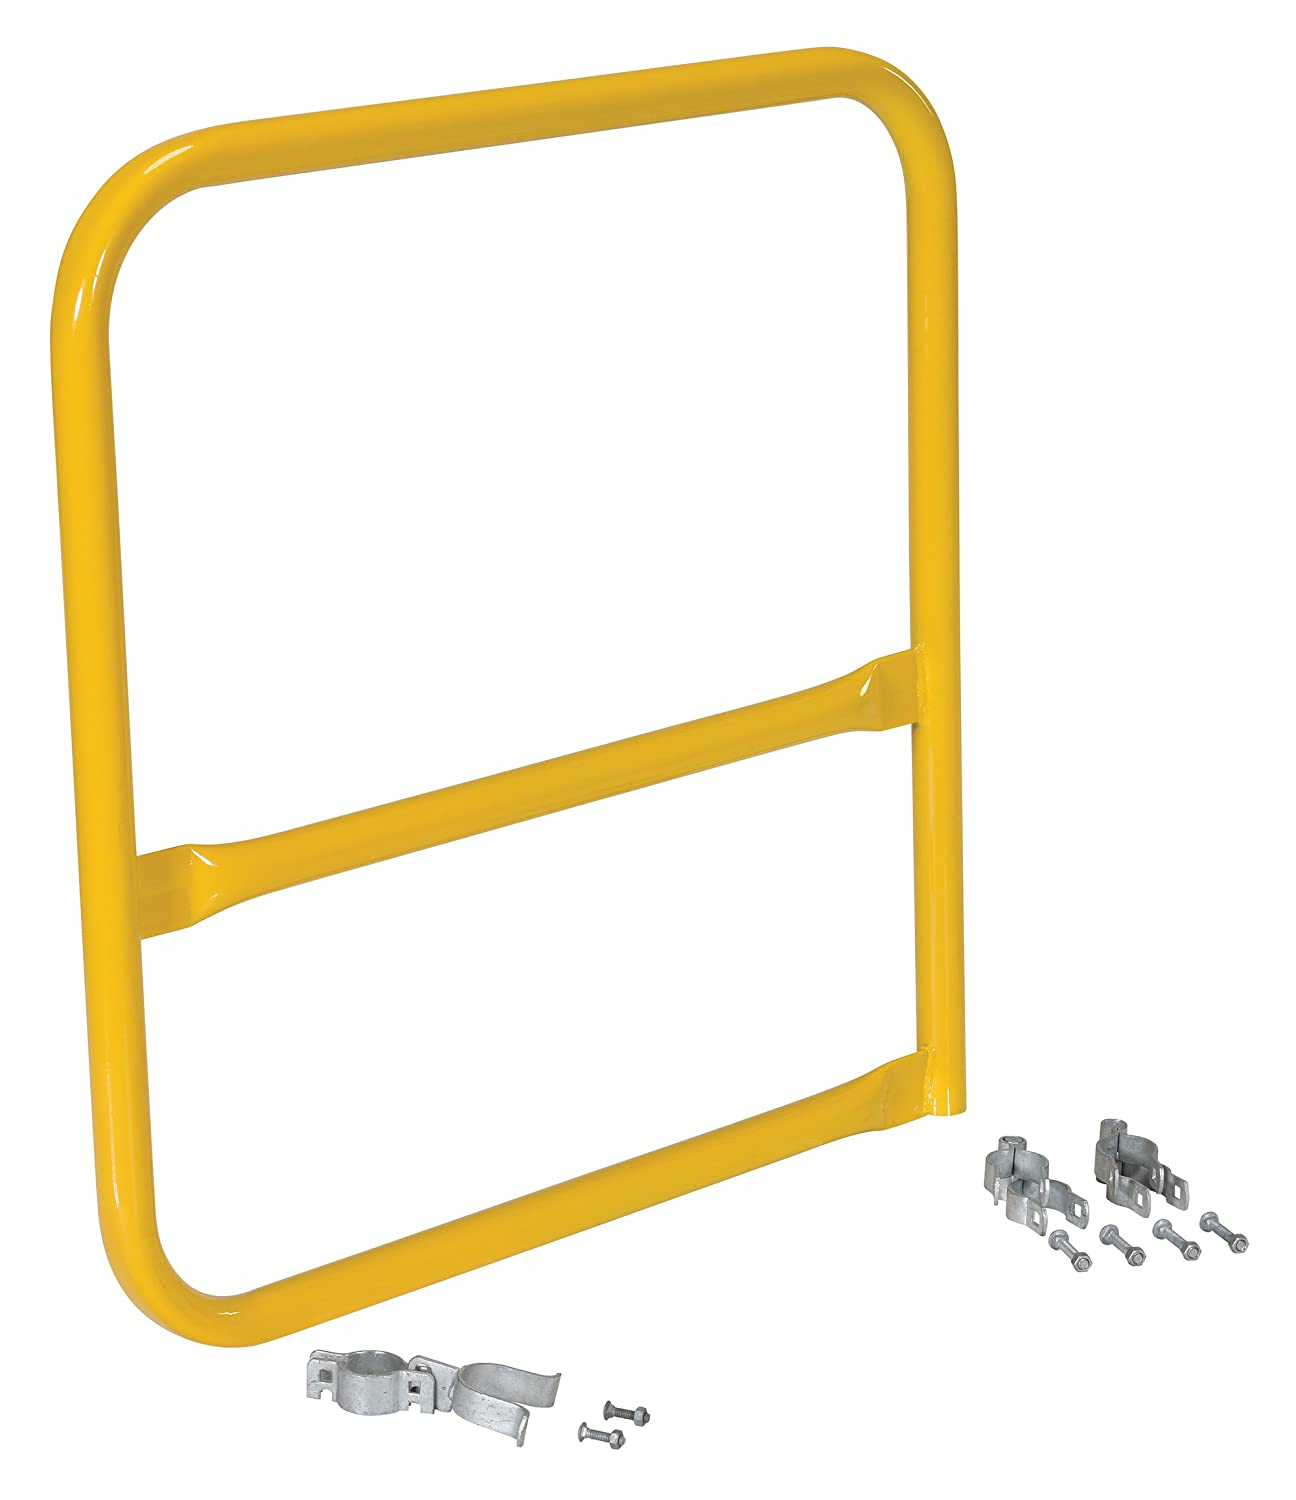 VESTIL VDKR-G3-B Special price Easy-to-use for a limited time Steel Safety Guardrail Door Swing 3' Length